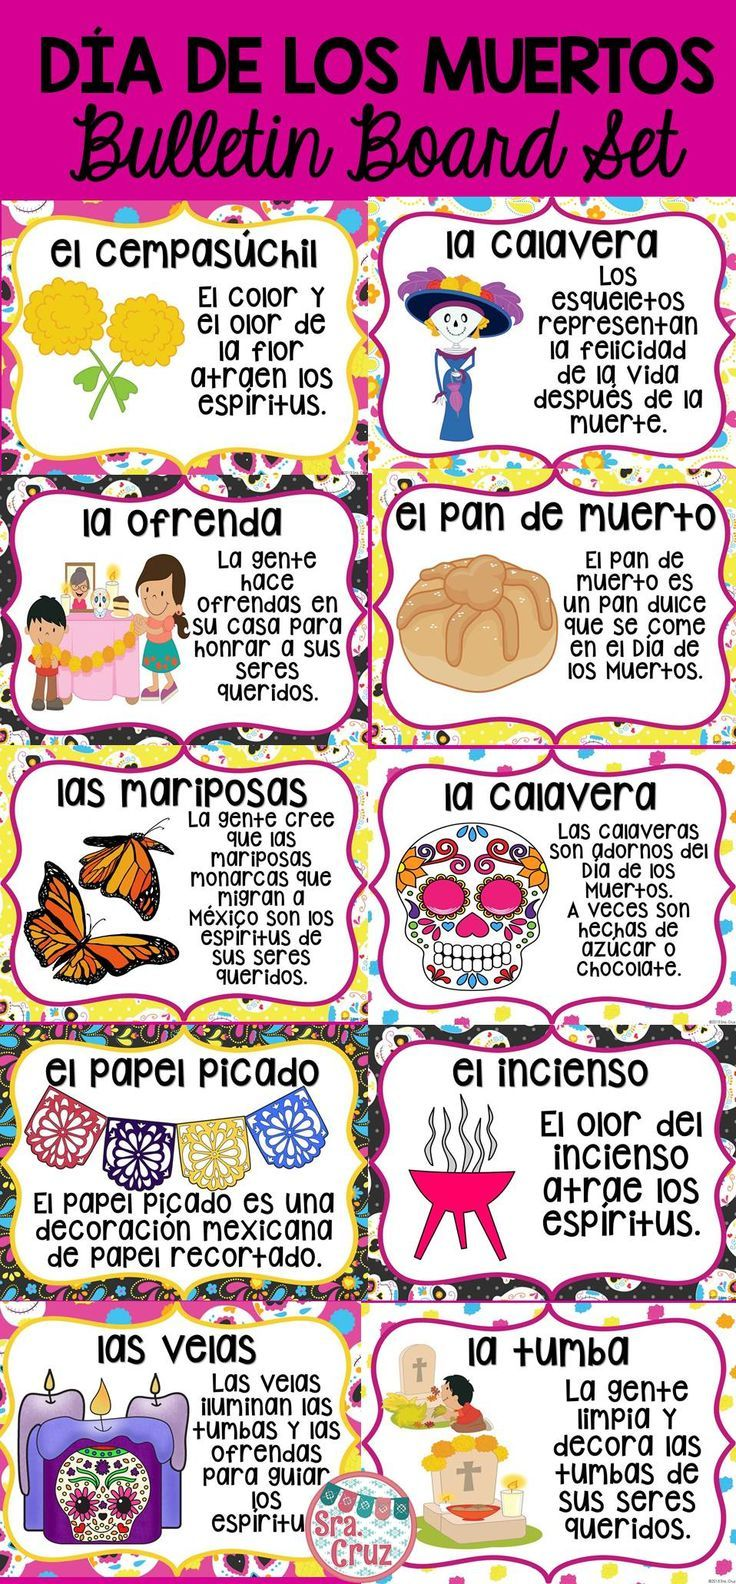 Día de los Muertos Bulletin Board Set.  Includes 12 pages and a bulletin board header.  Spanish version and version with word and image only.